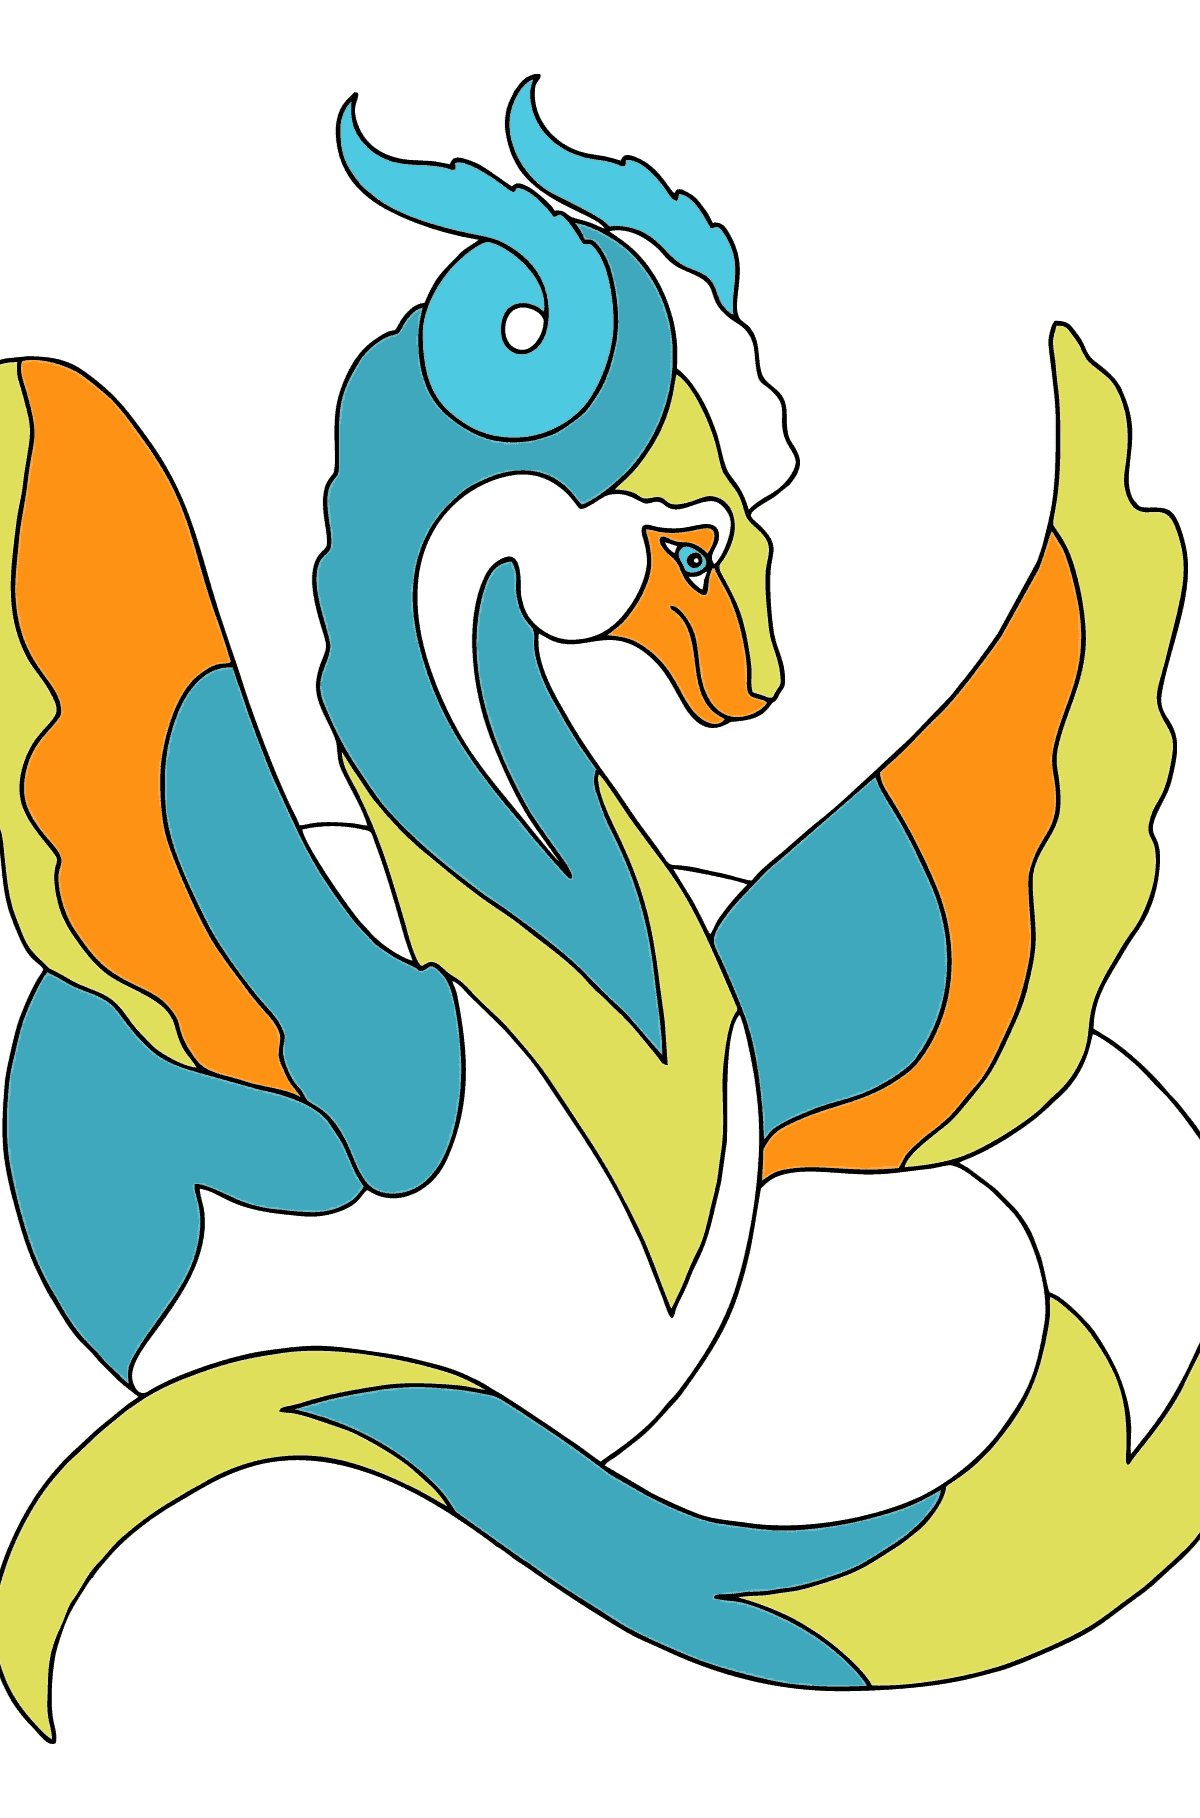 Coloring Page - A Dragon with a Long Multicolored Tail - Coloring Pages for Children